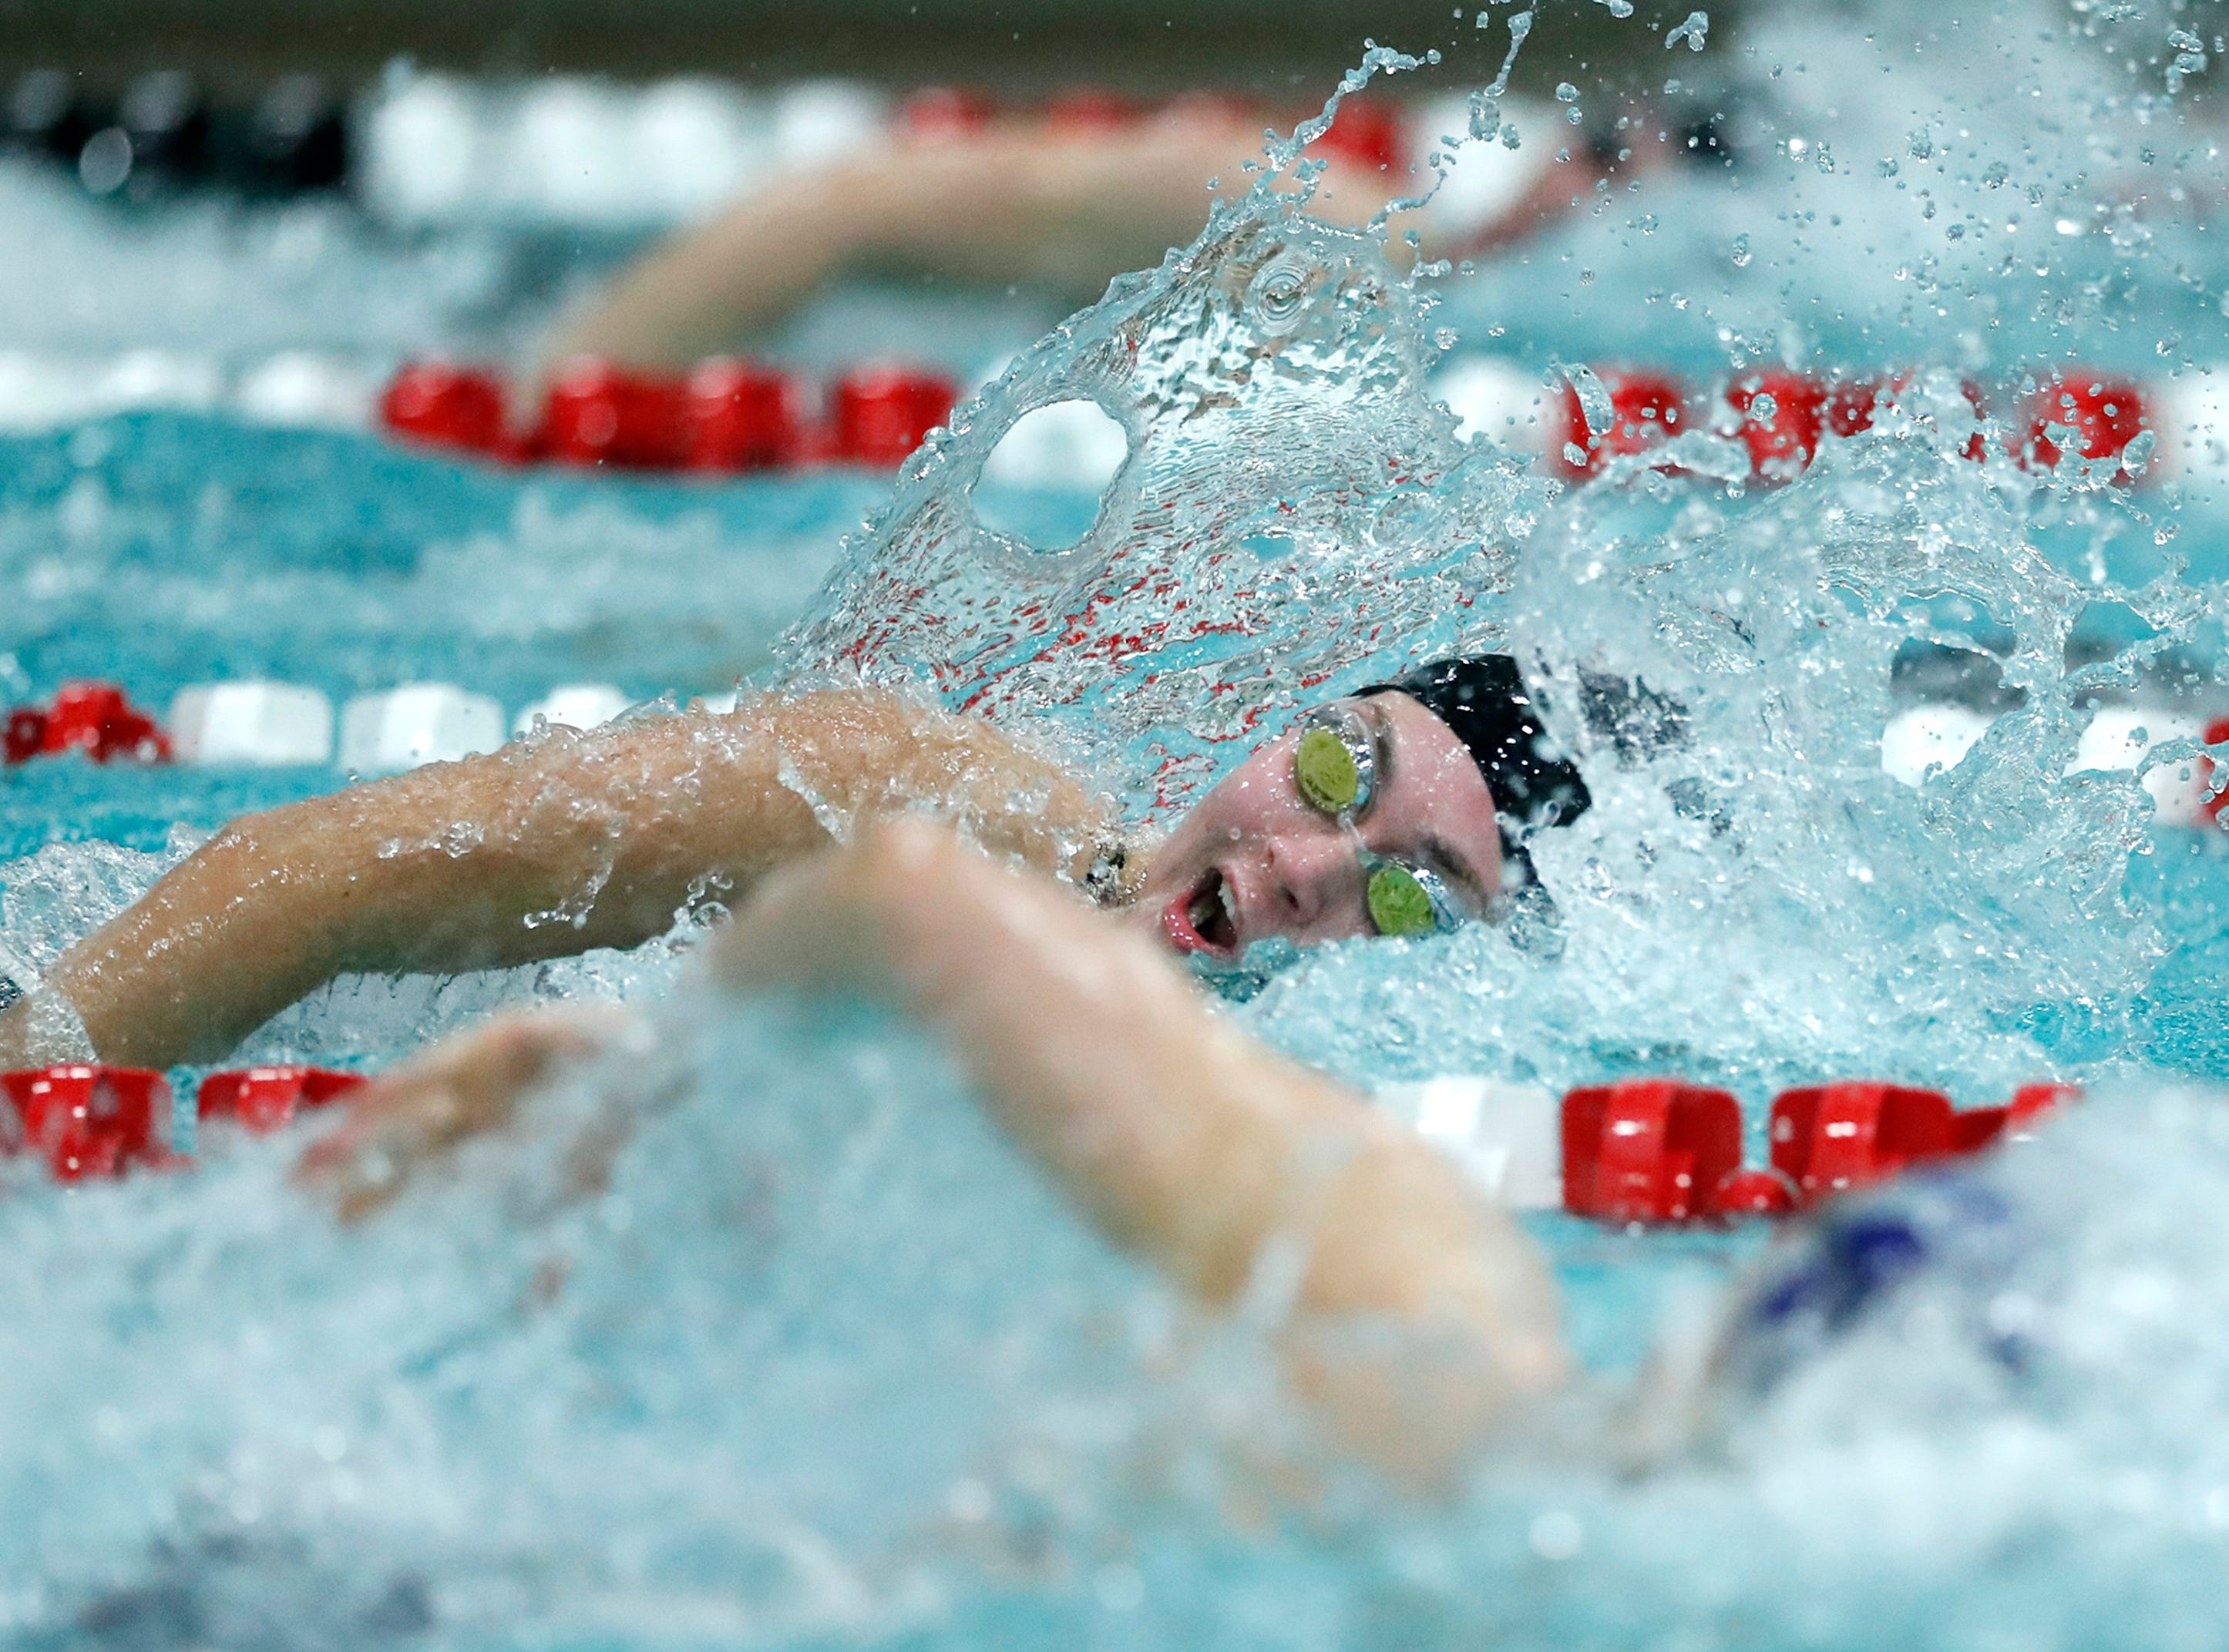 Sturgeon Bay Co-op's Molly Banks races in the 100 yard freestyle during the WIAA Division 2 State Swimming and Diving meet Friday, Nov. 9, 2018, at the UW Natatorium in Madison, Wis.Danny Damiani/USA TODAY NETWORK-Wisconsin